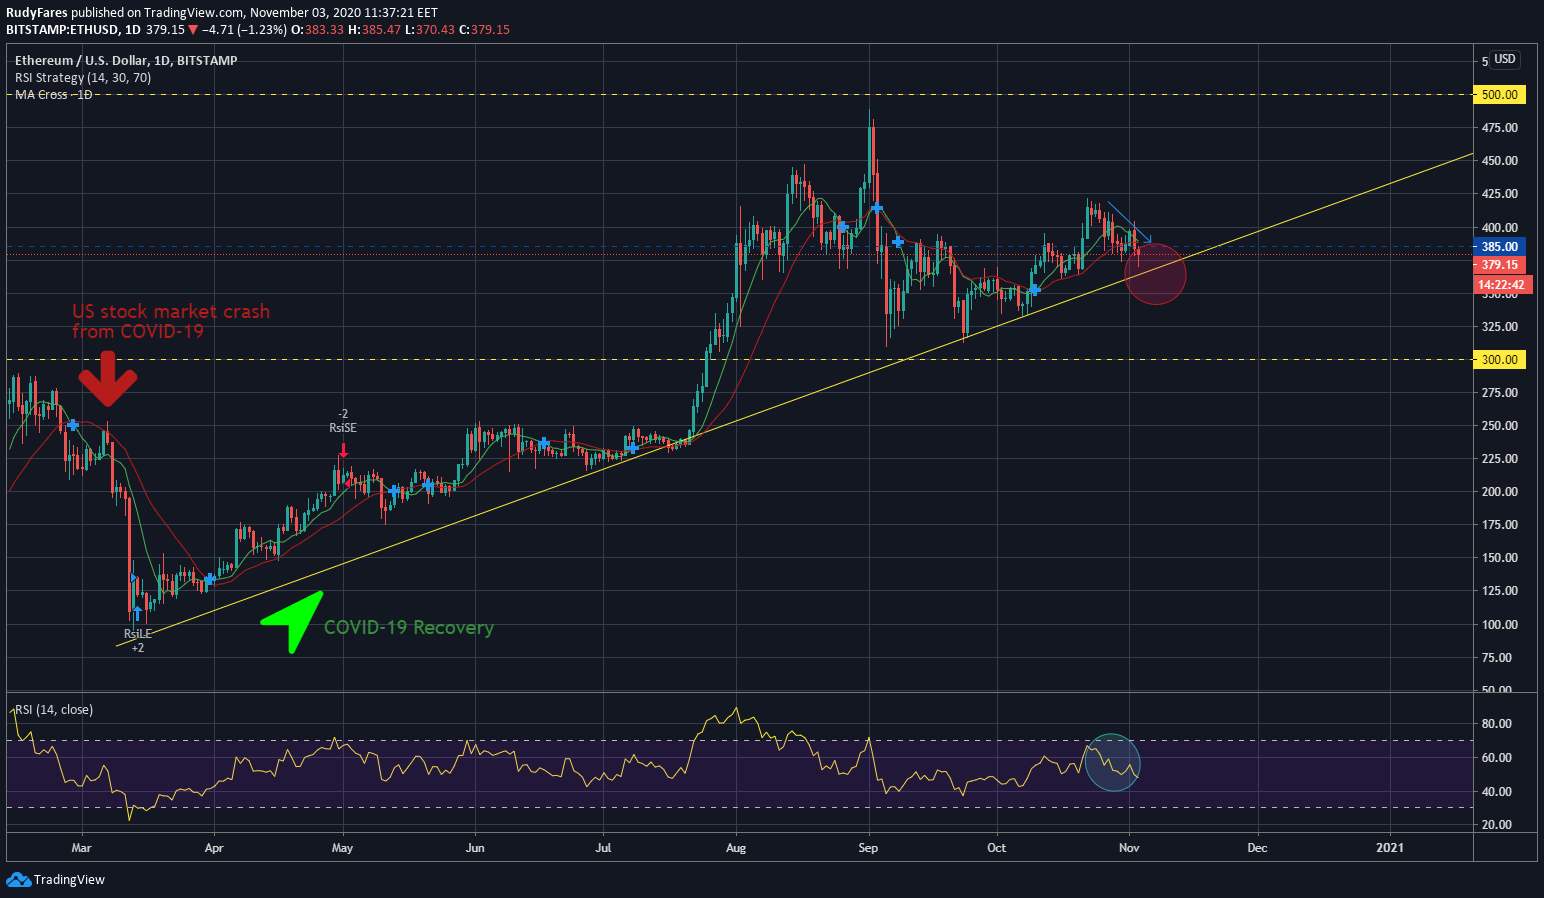 ETH/USD price 1D chart, showing the uptrend continuation